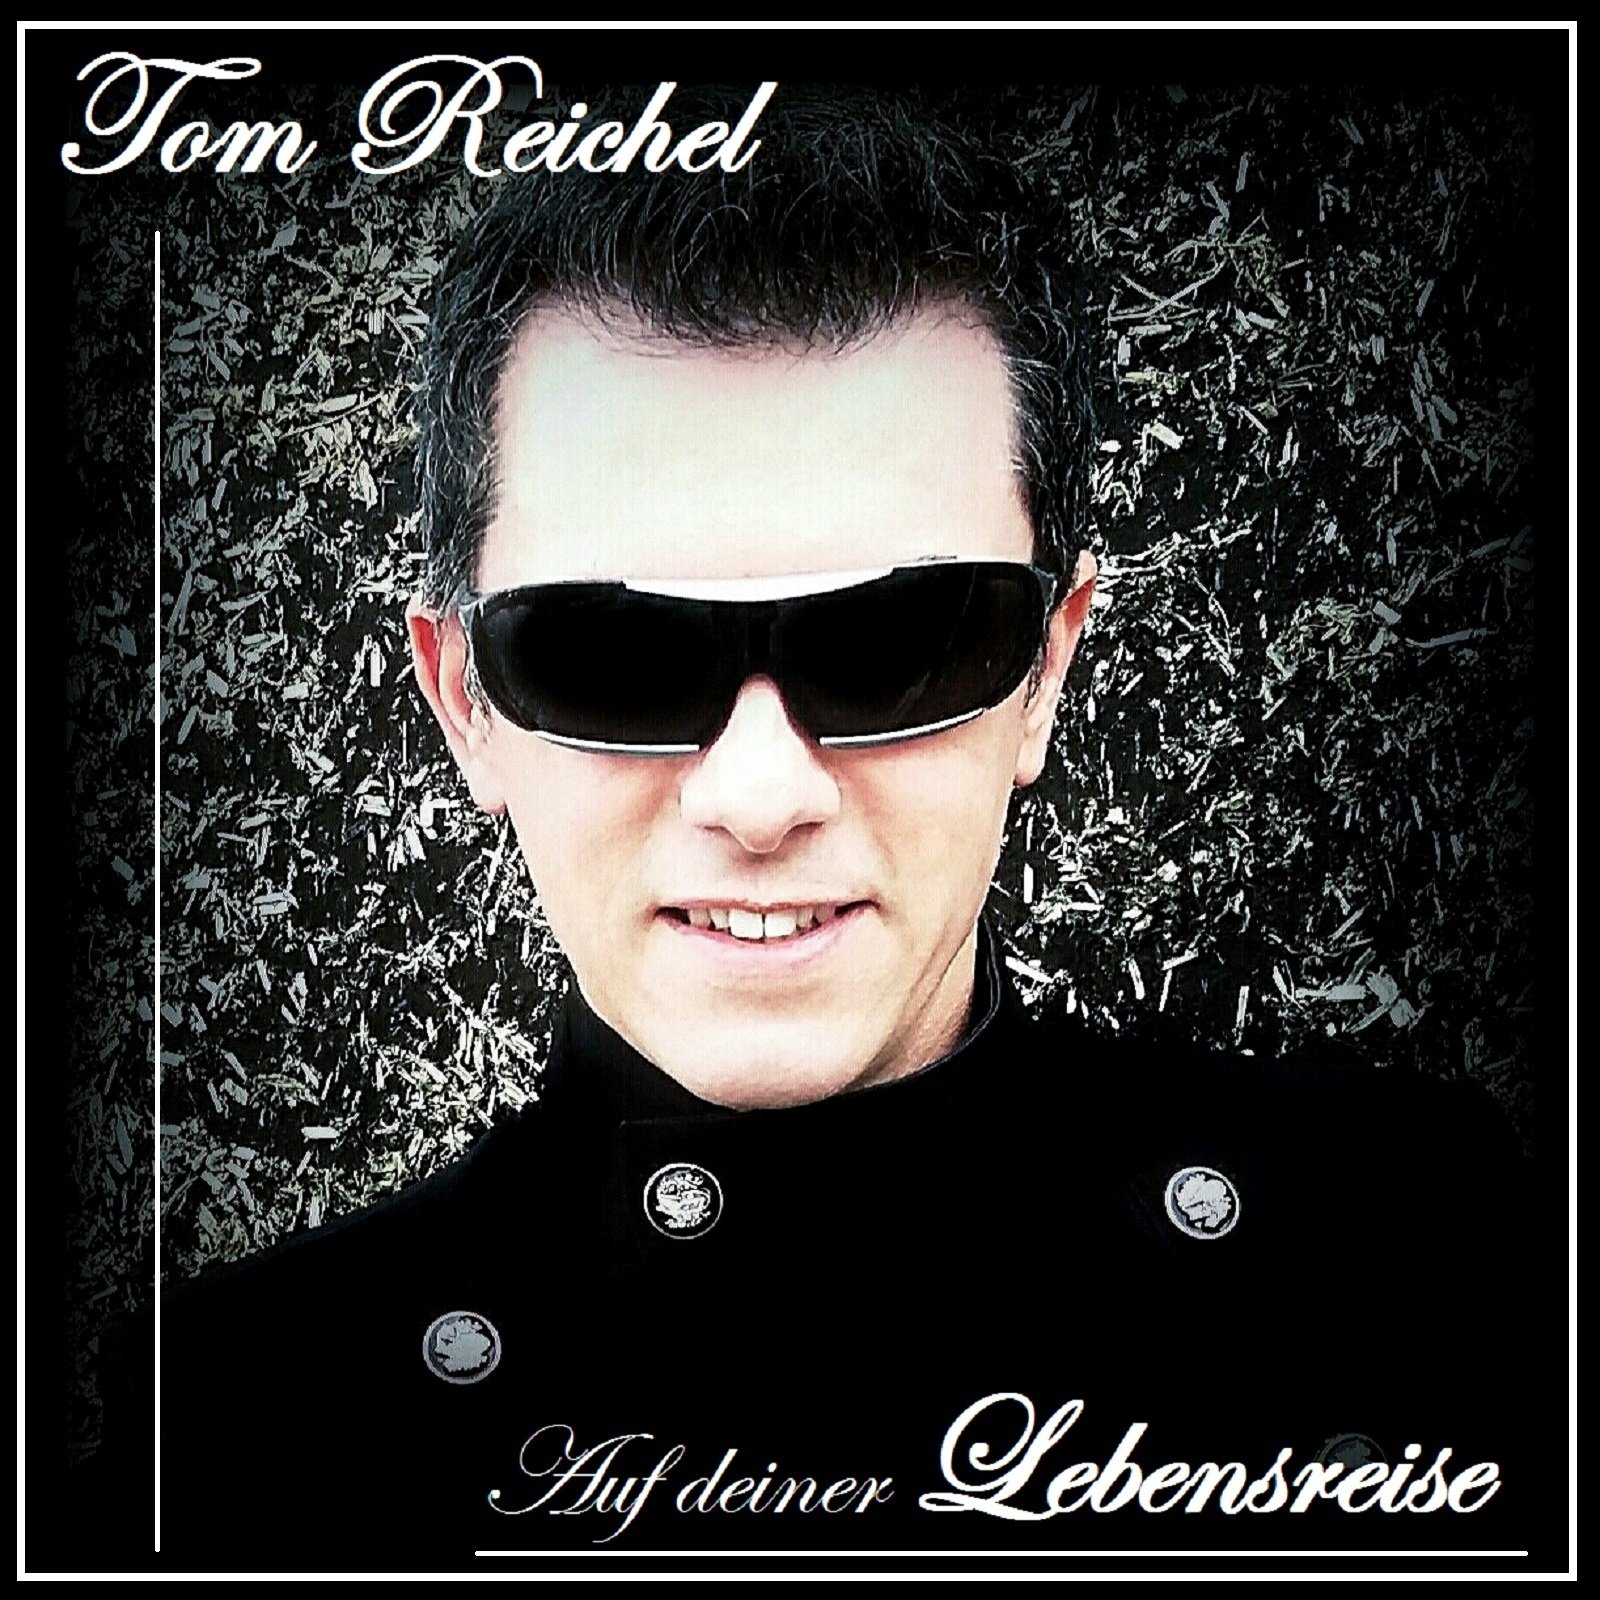 Tom Reichel Album , Tom Reichel Best Of , Tom Reichel Lebensreise